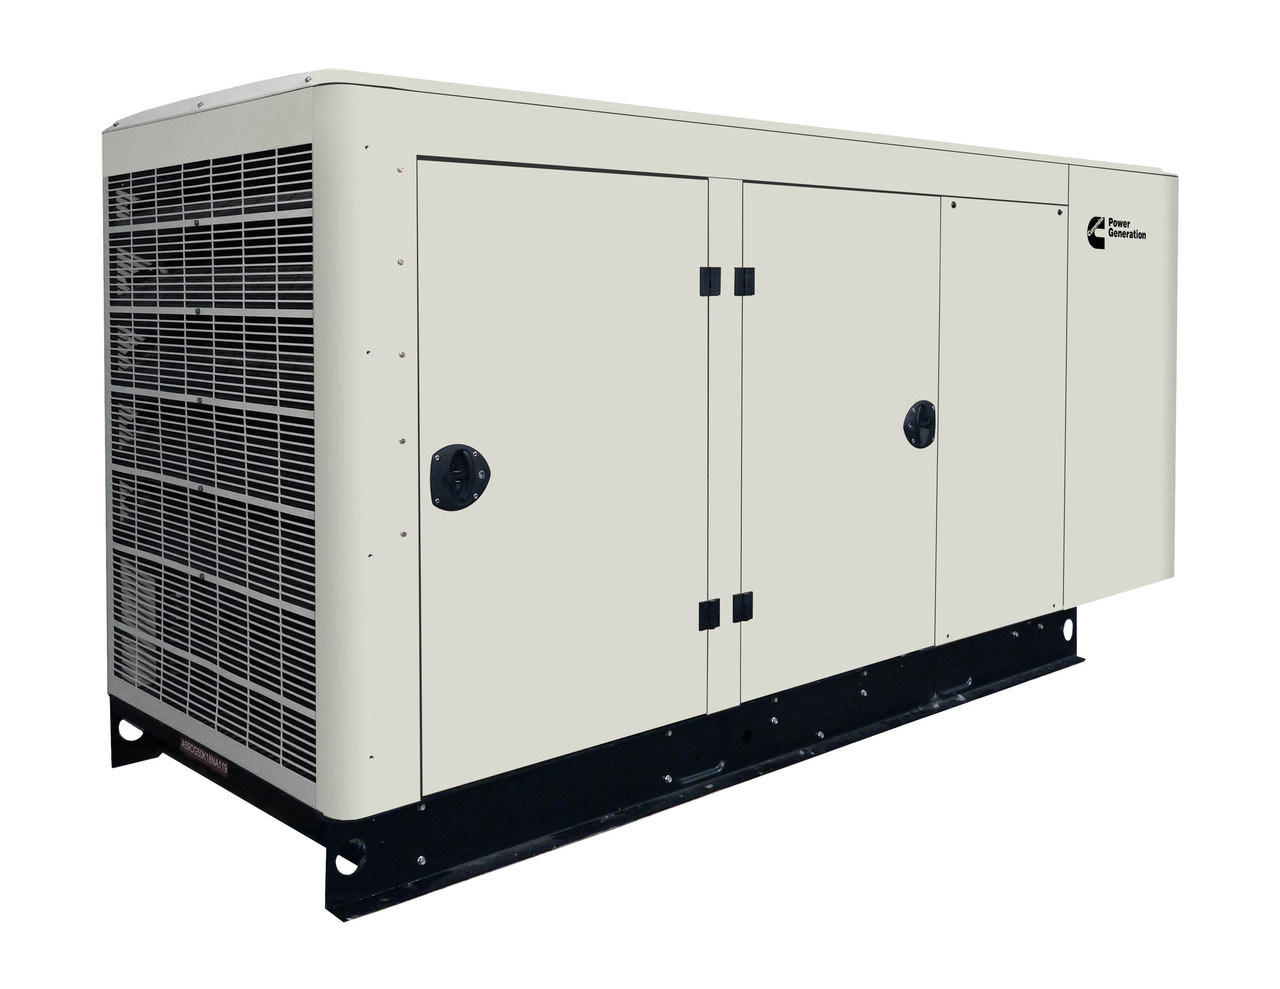 hight resolution of cummins rs50 quiet connect series 50kw generator